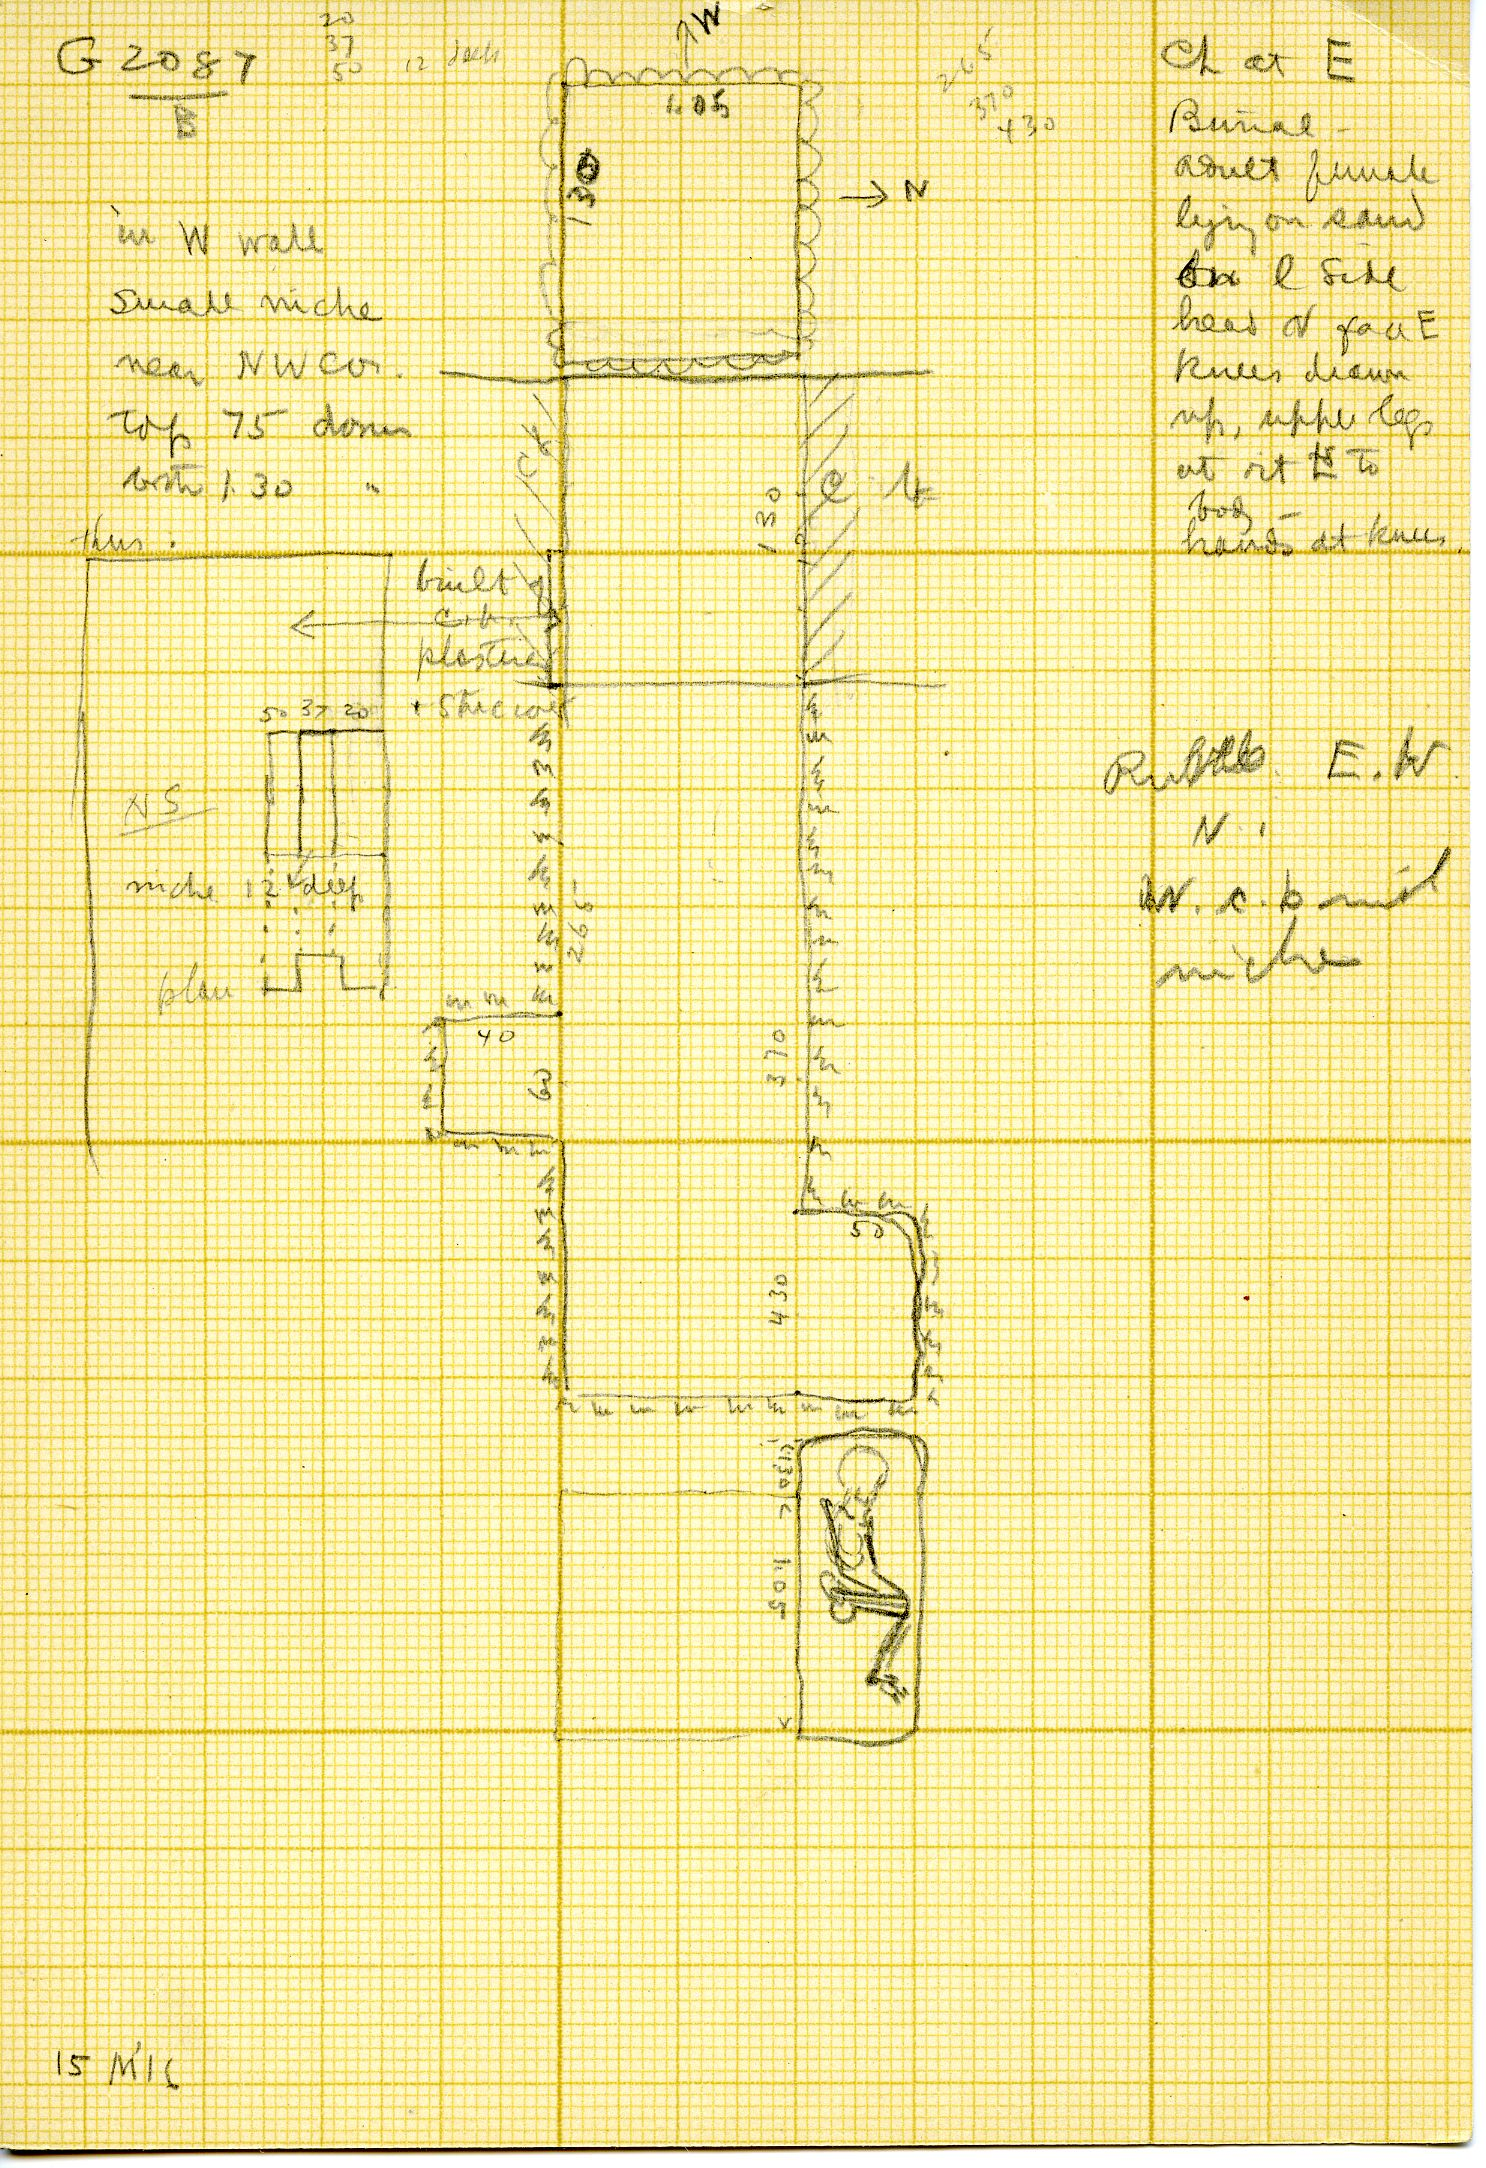 Maps and plans: G 3087, Shaft B